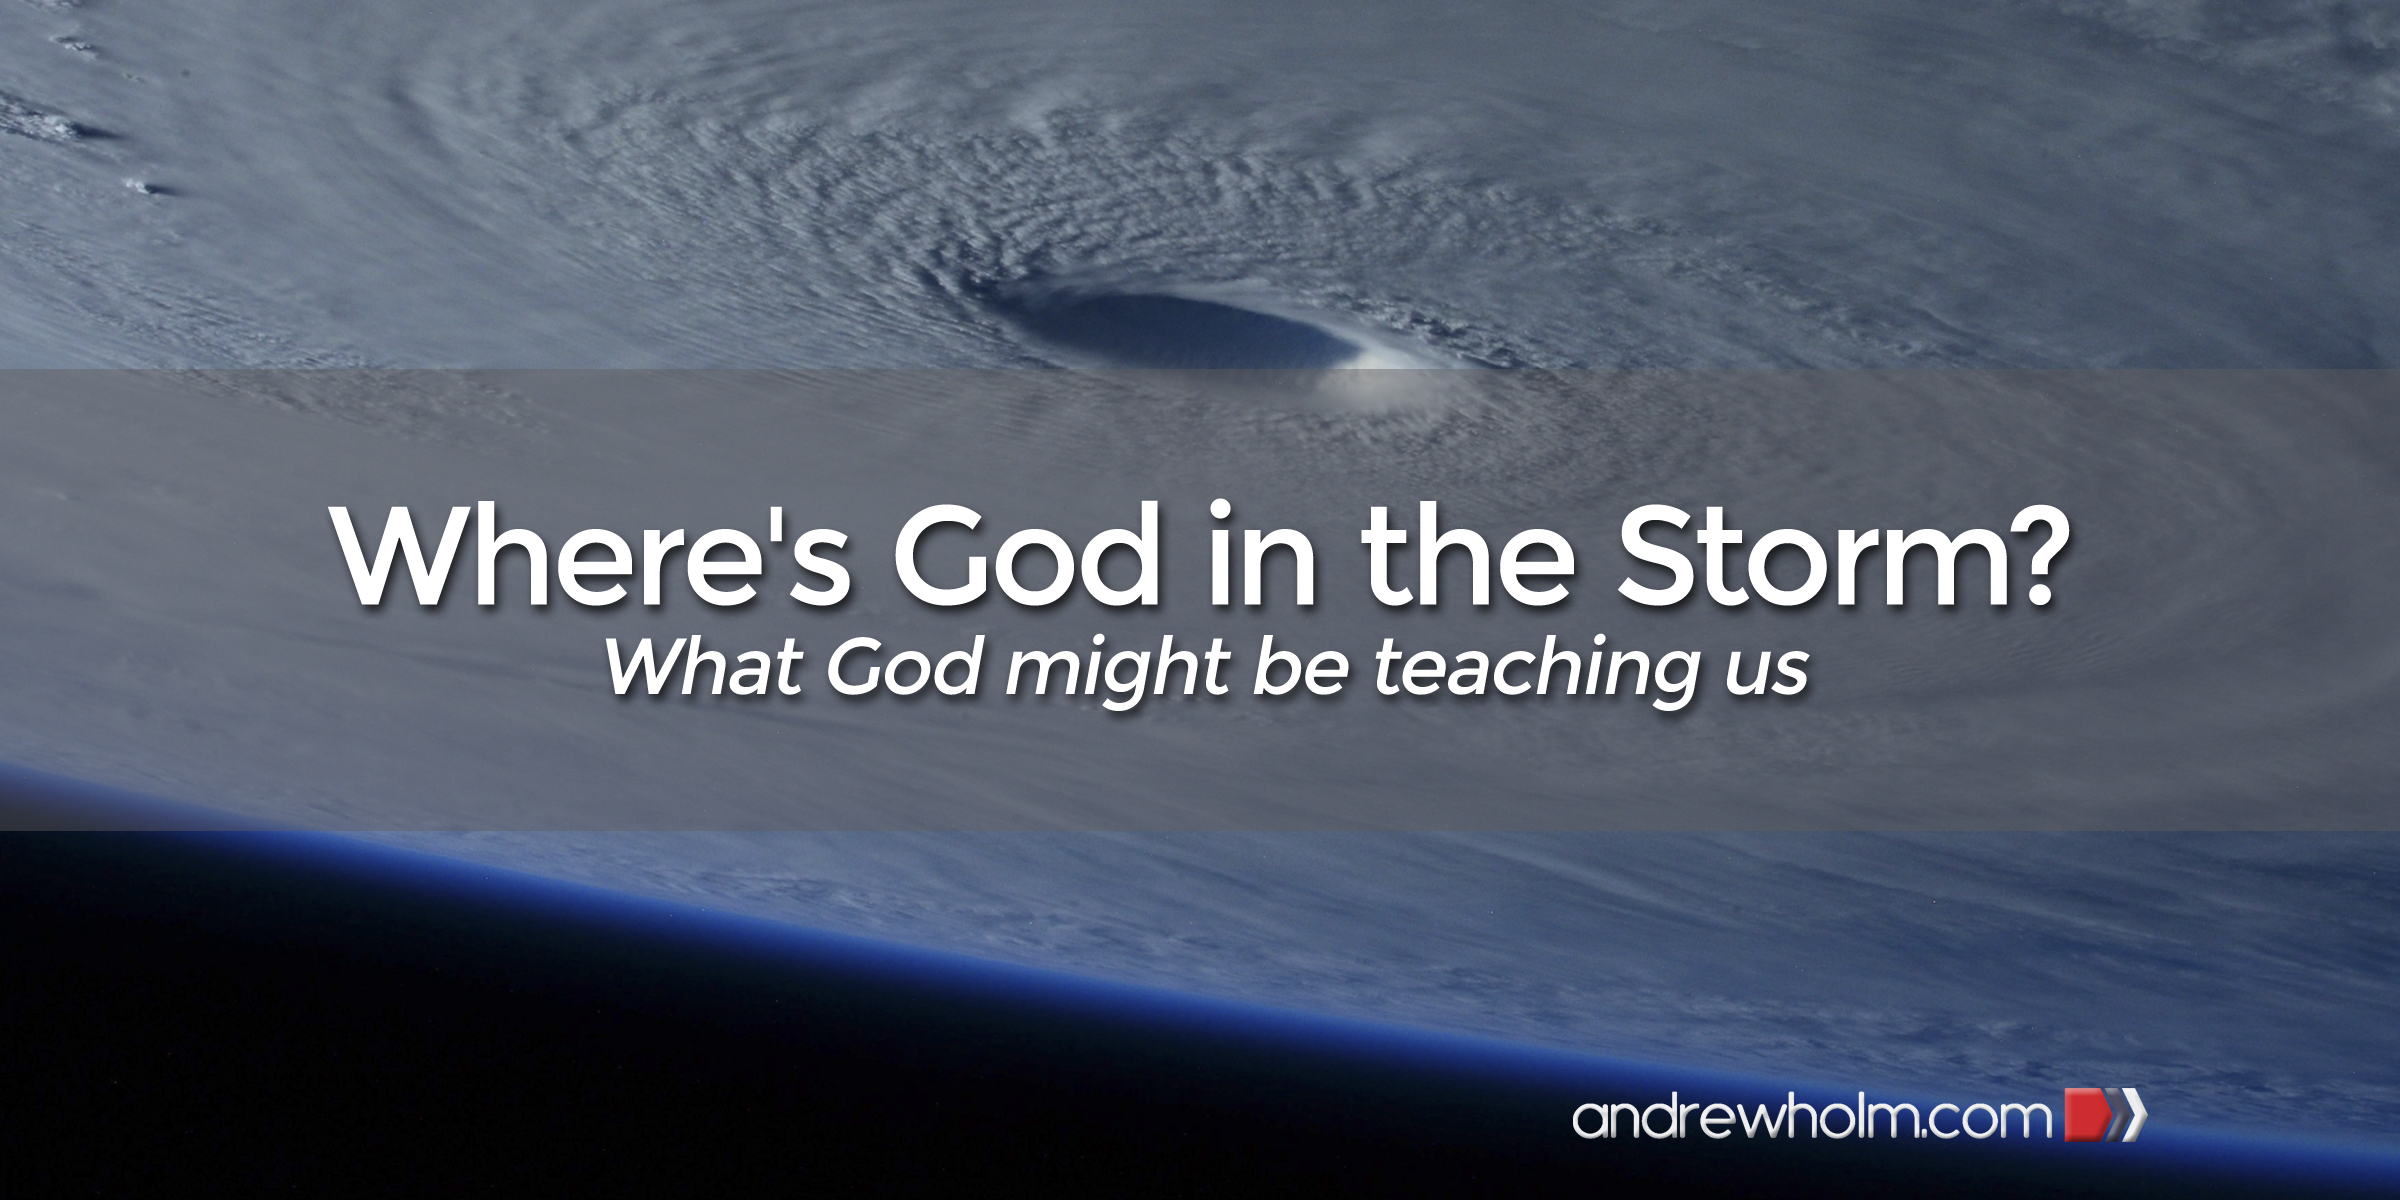 Where's God in the Storm?